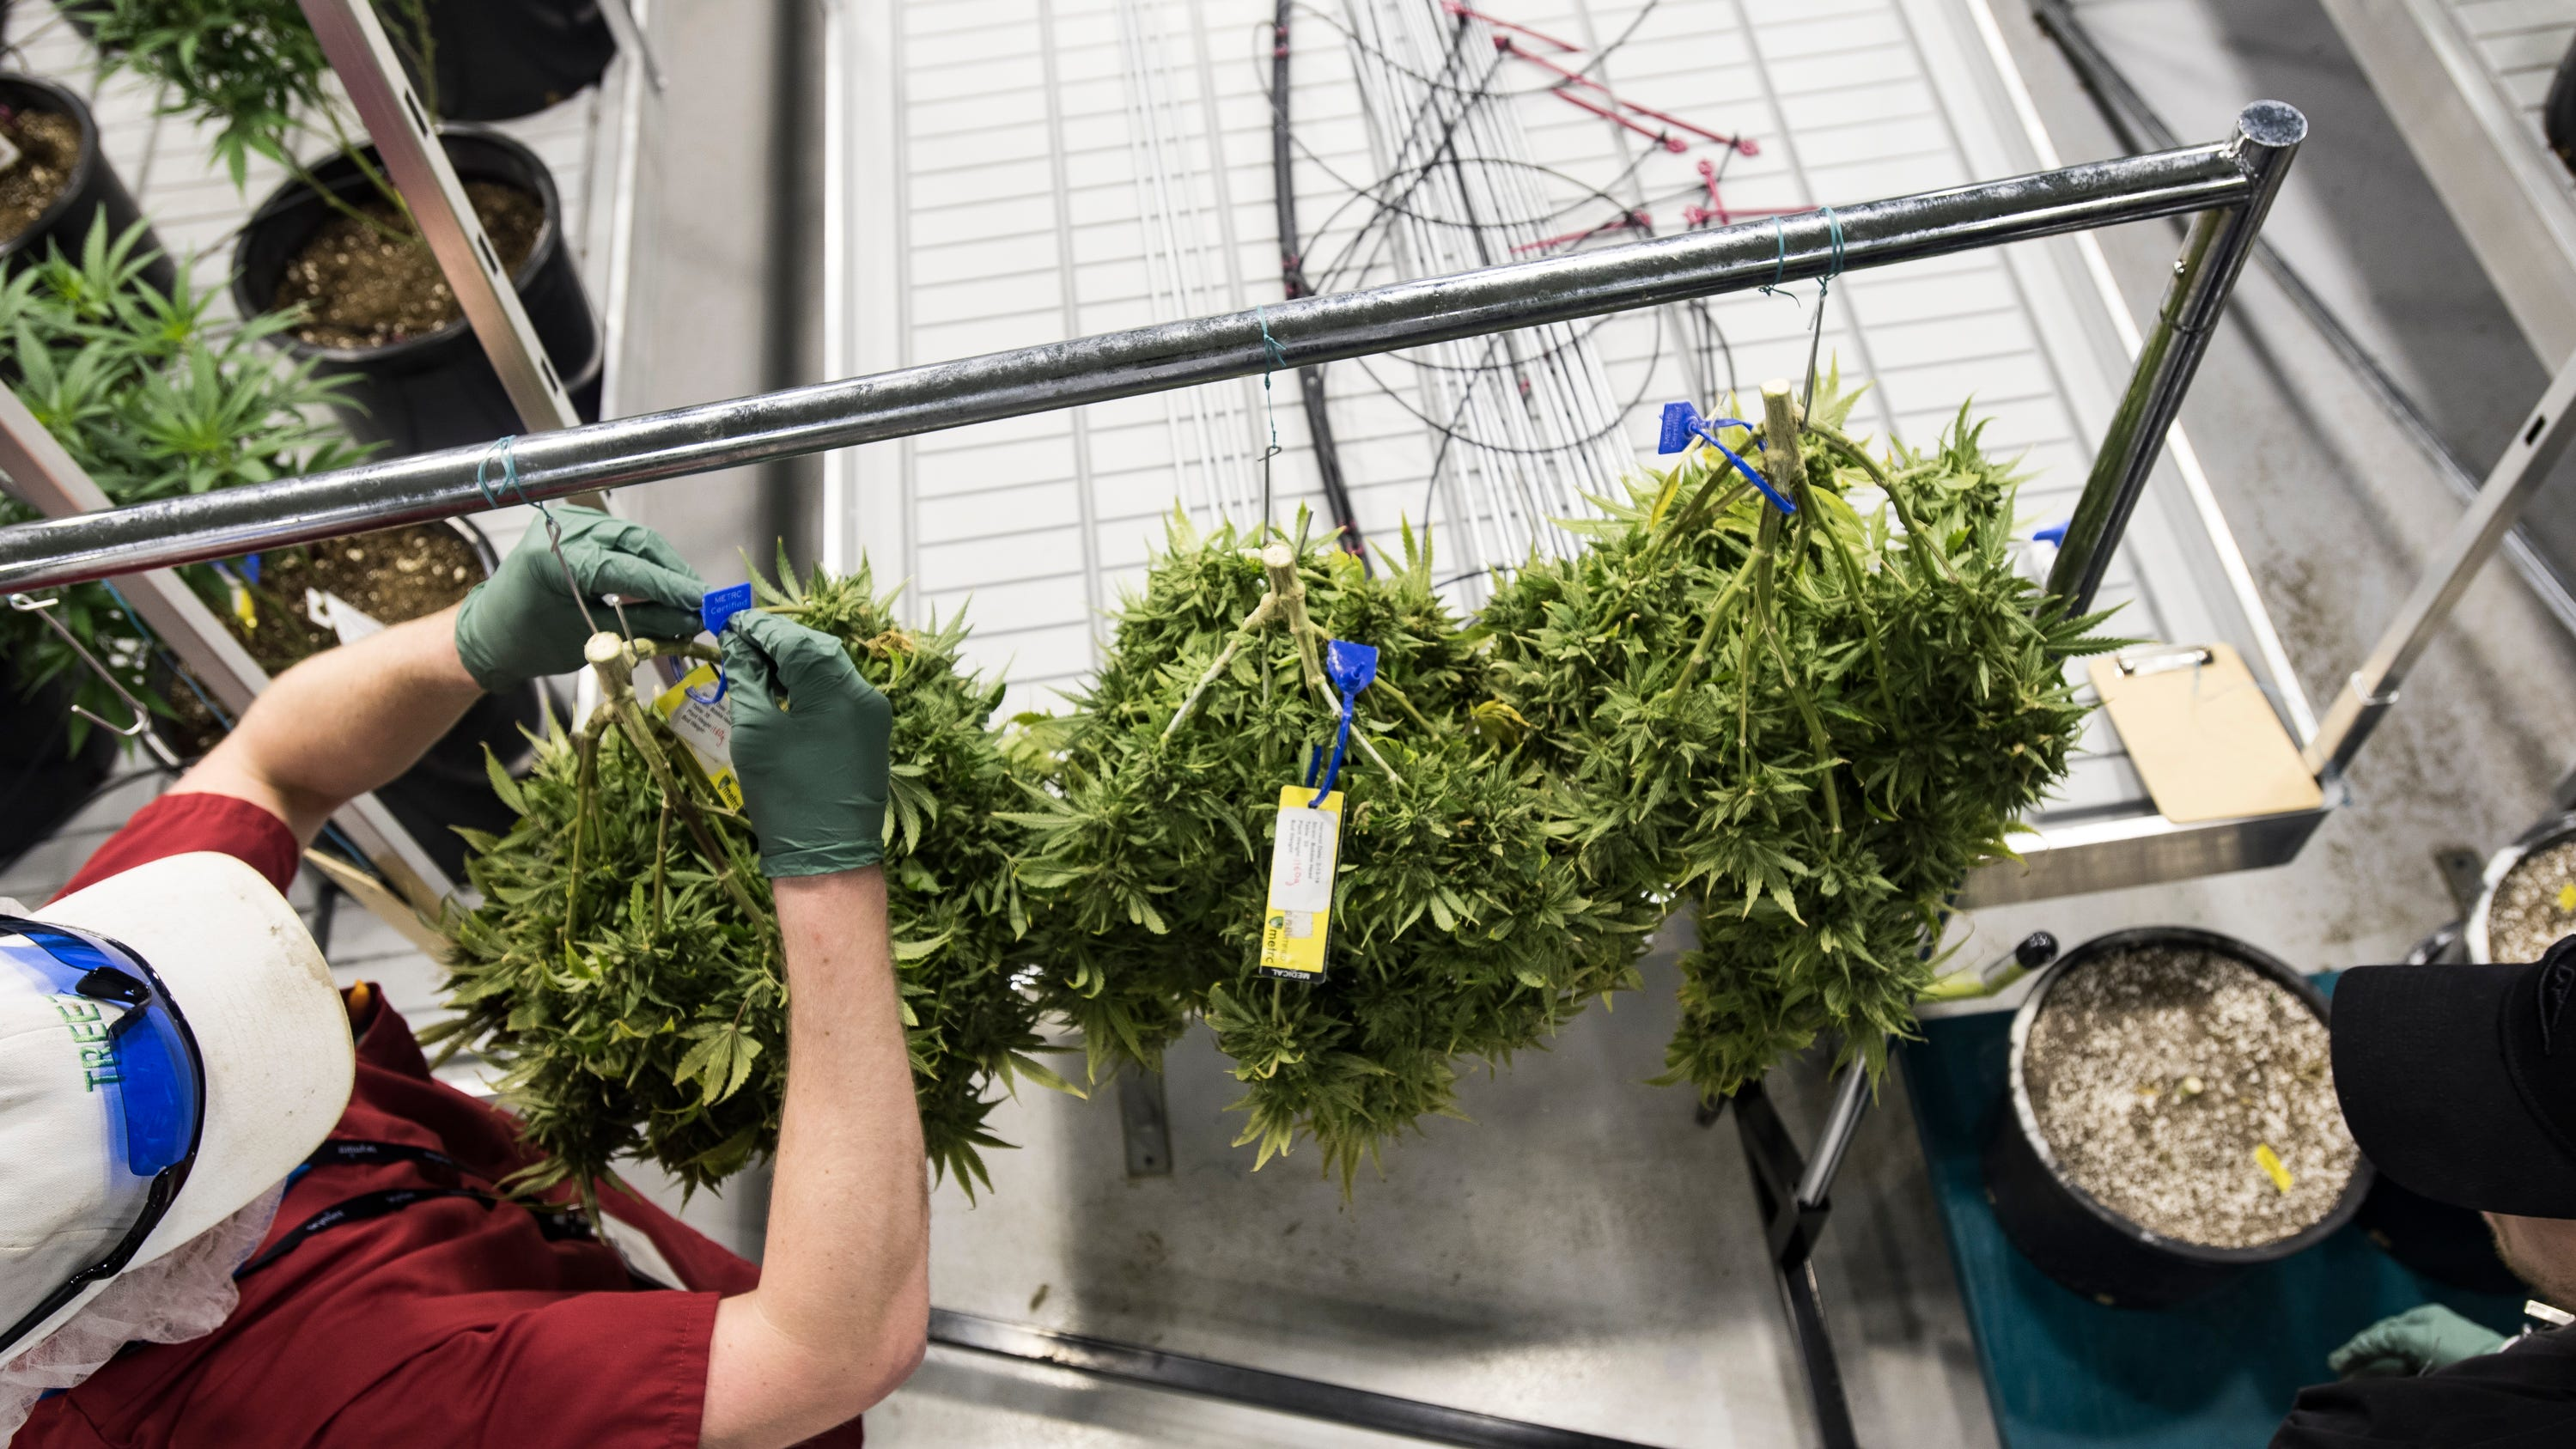 Marijuana company Green Peak Innovations employs 80 people and expects toemployabout 200 by the end of the year.